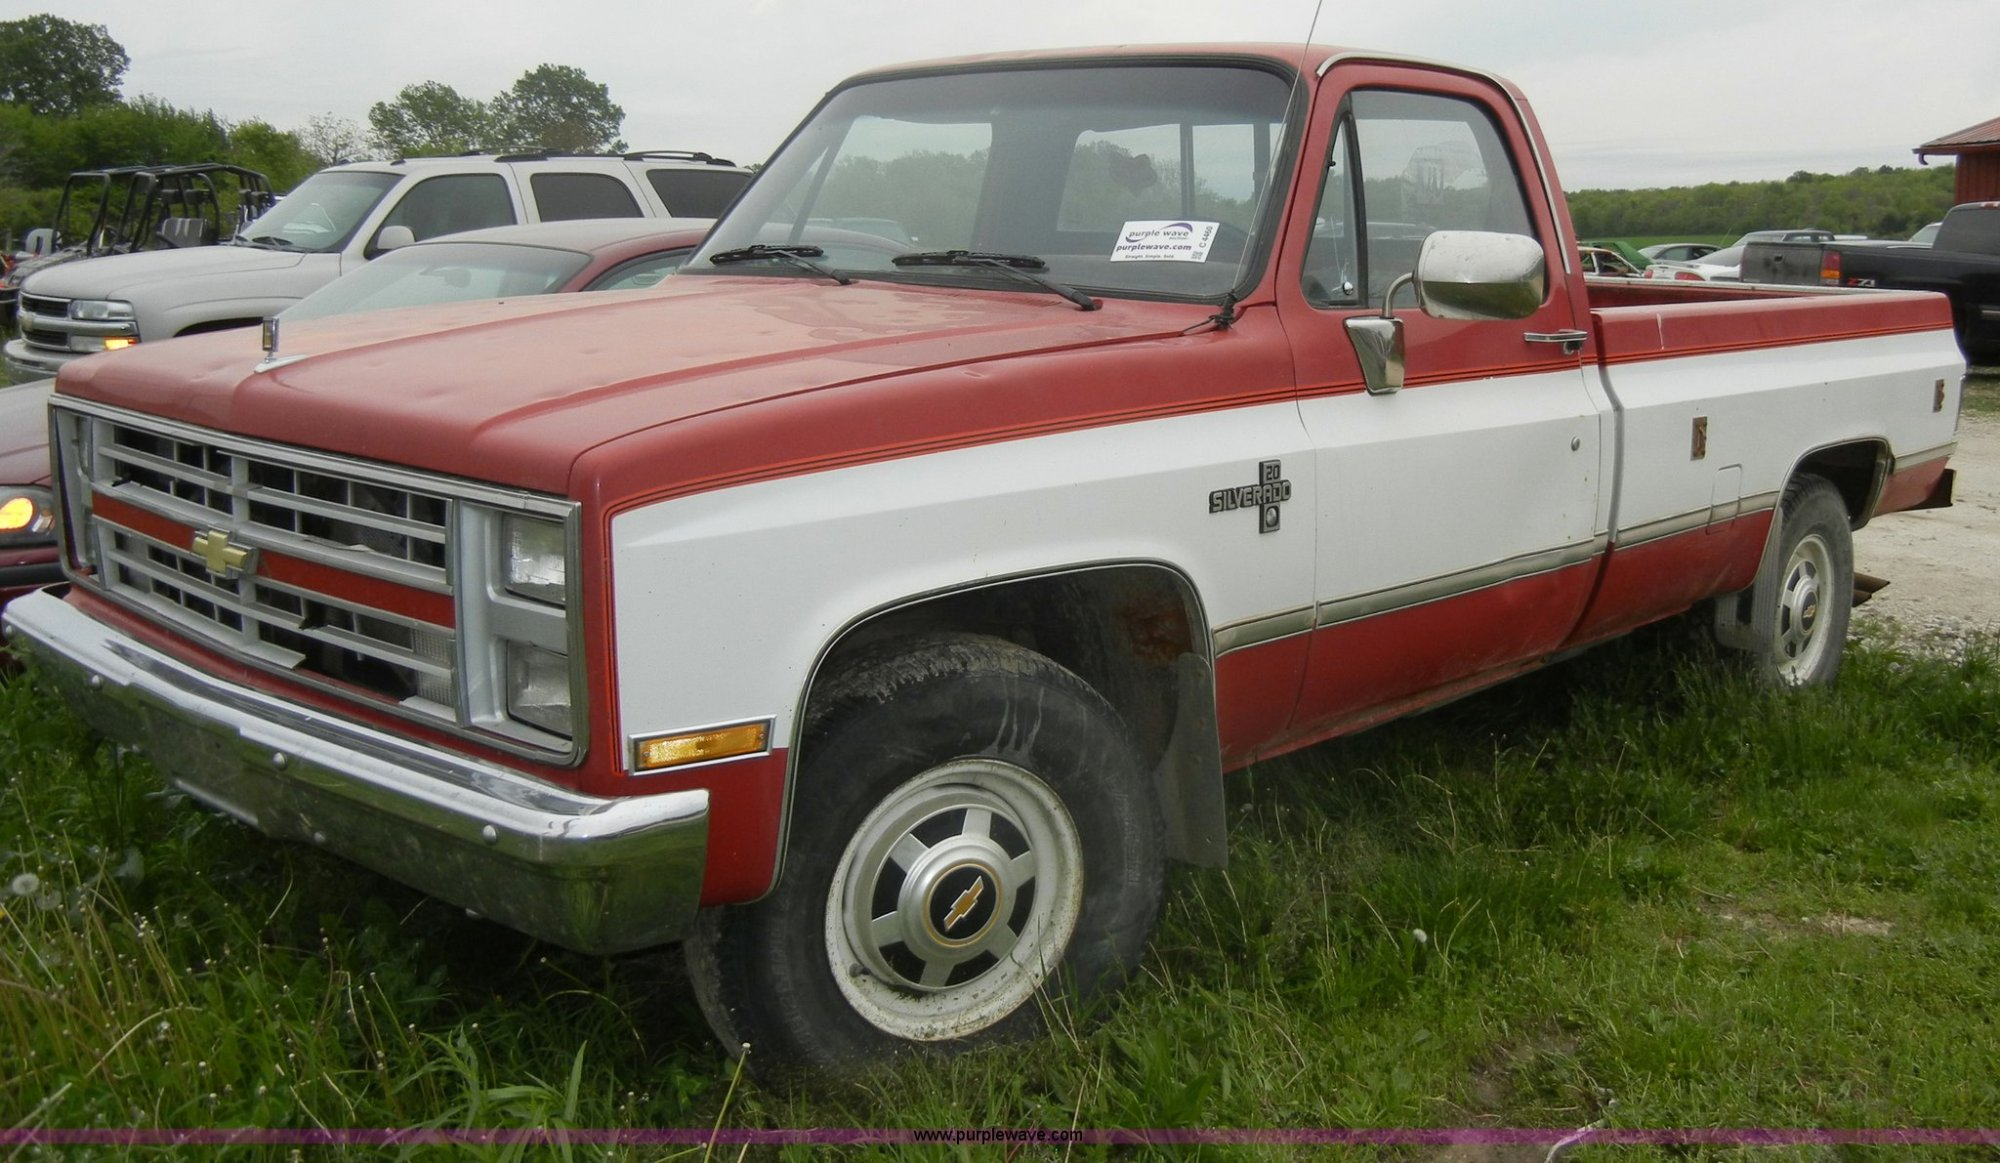 hight resolution of c4460 image for item c4460 1987 chevrolet silverado r20 pickup truck